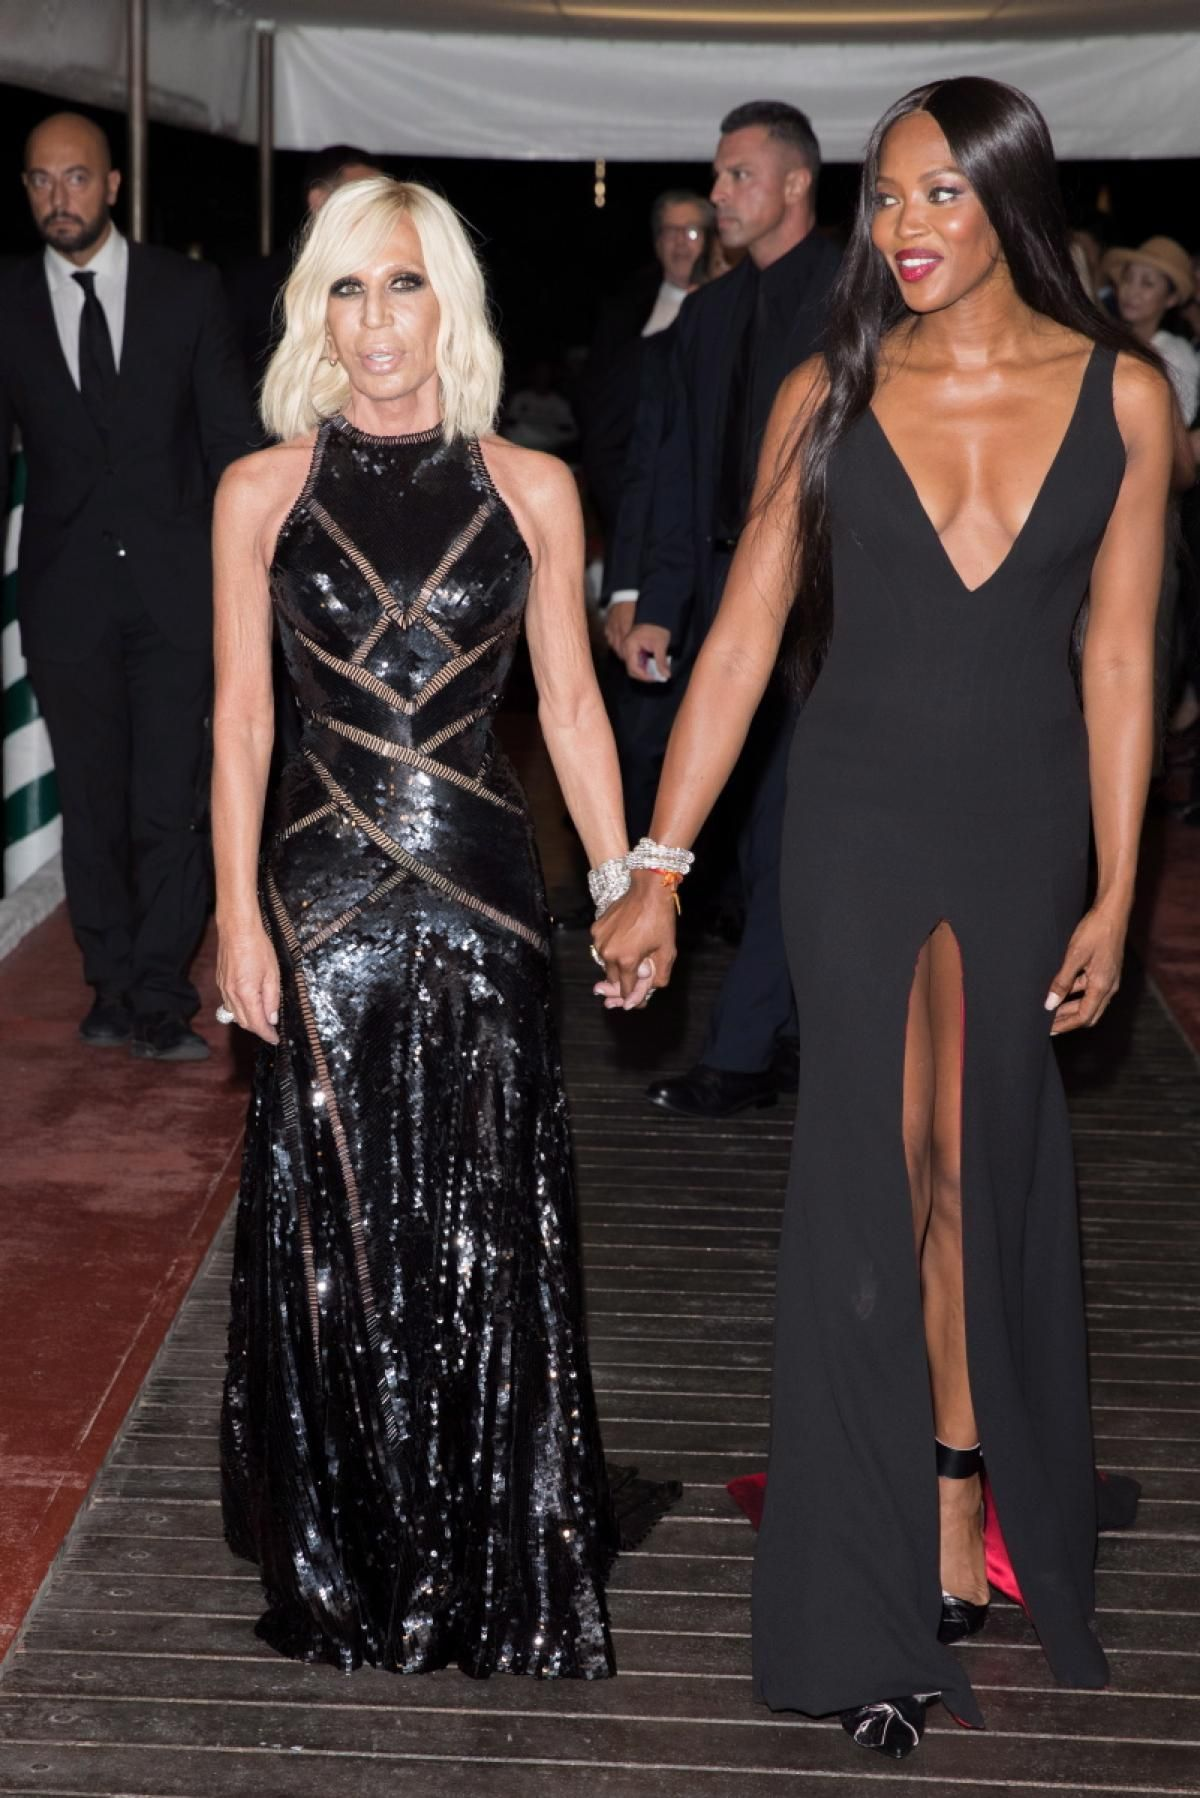 Donatella Versace And Naomi Campbell Made A Stylish Entrance As